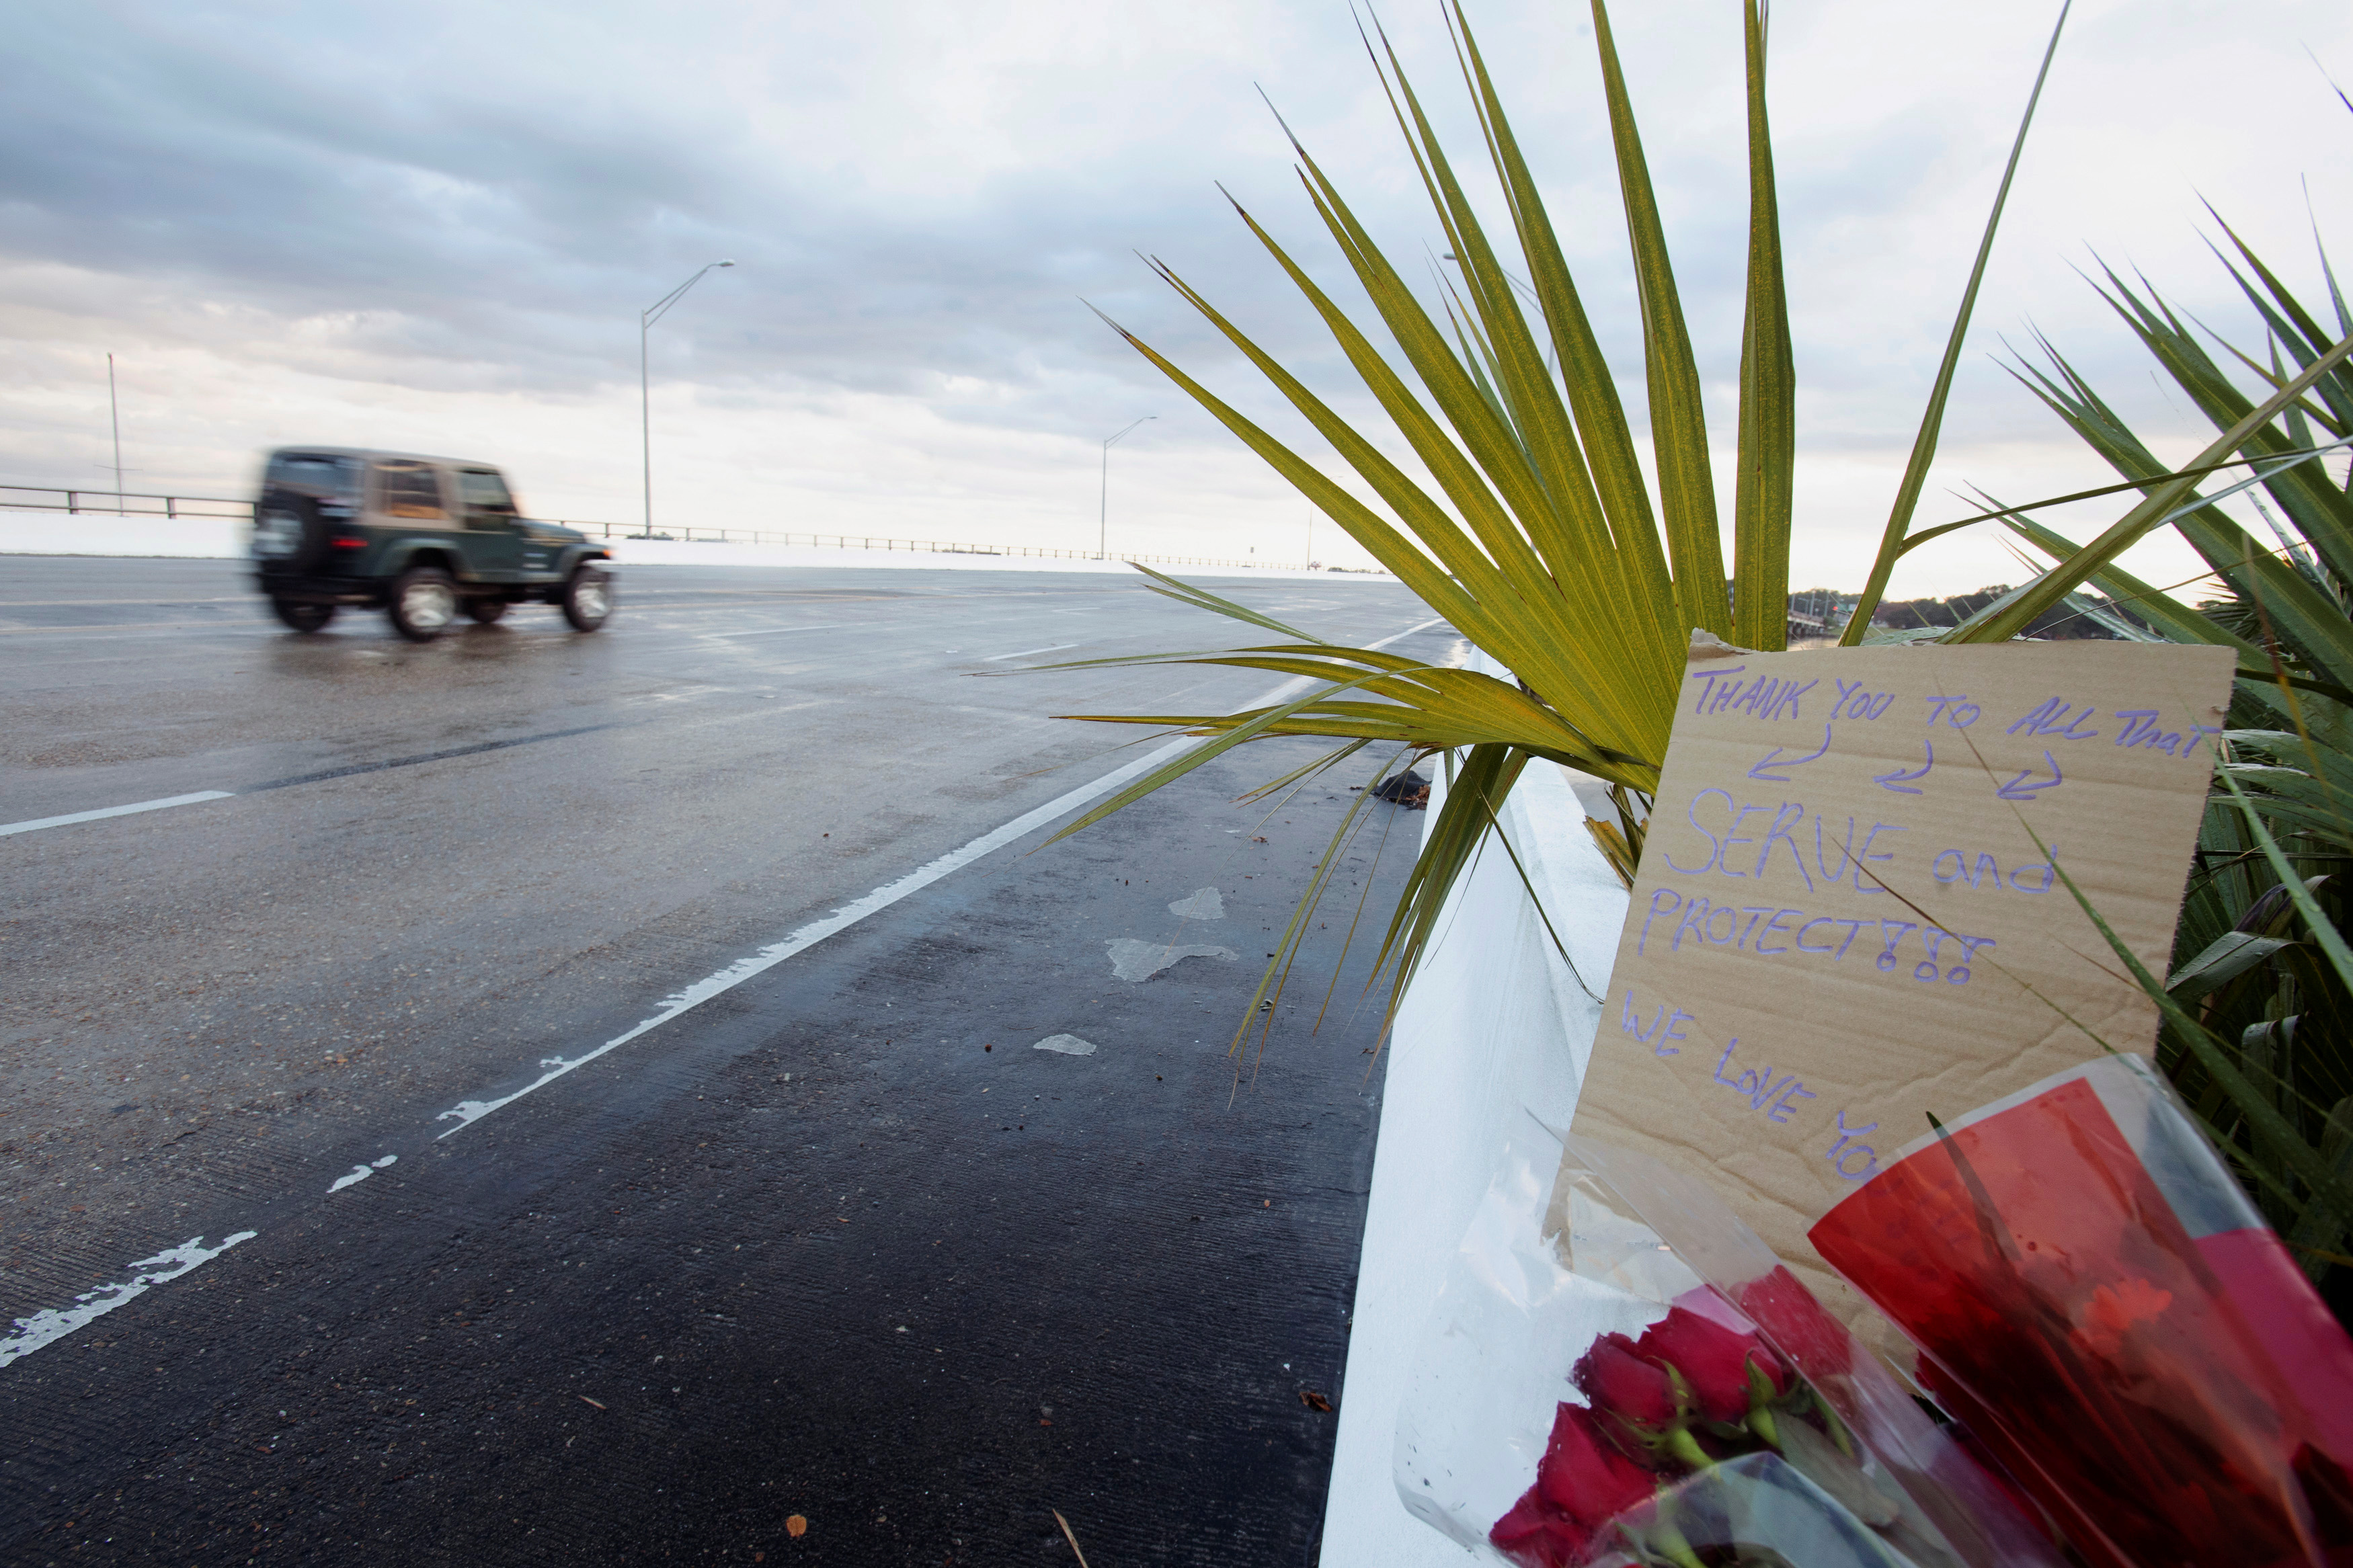 Flowers and a message are left on the entrance bridge after a member of the Saudi Air Force visiting the United States for military training was the suspect in a shooting at Naval Air Station Pensacola, in Pensacola, Florida, U.S. December 6, 2019. REUTERS/Michael Spooneybarger